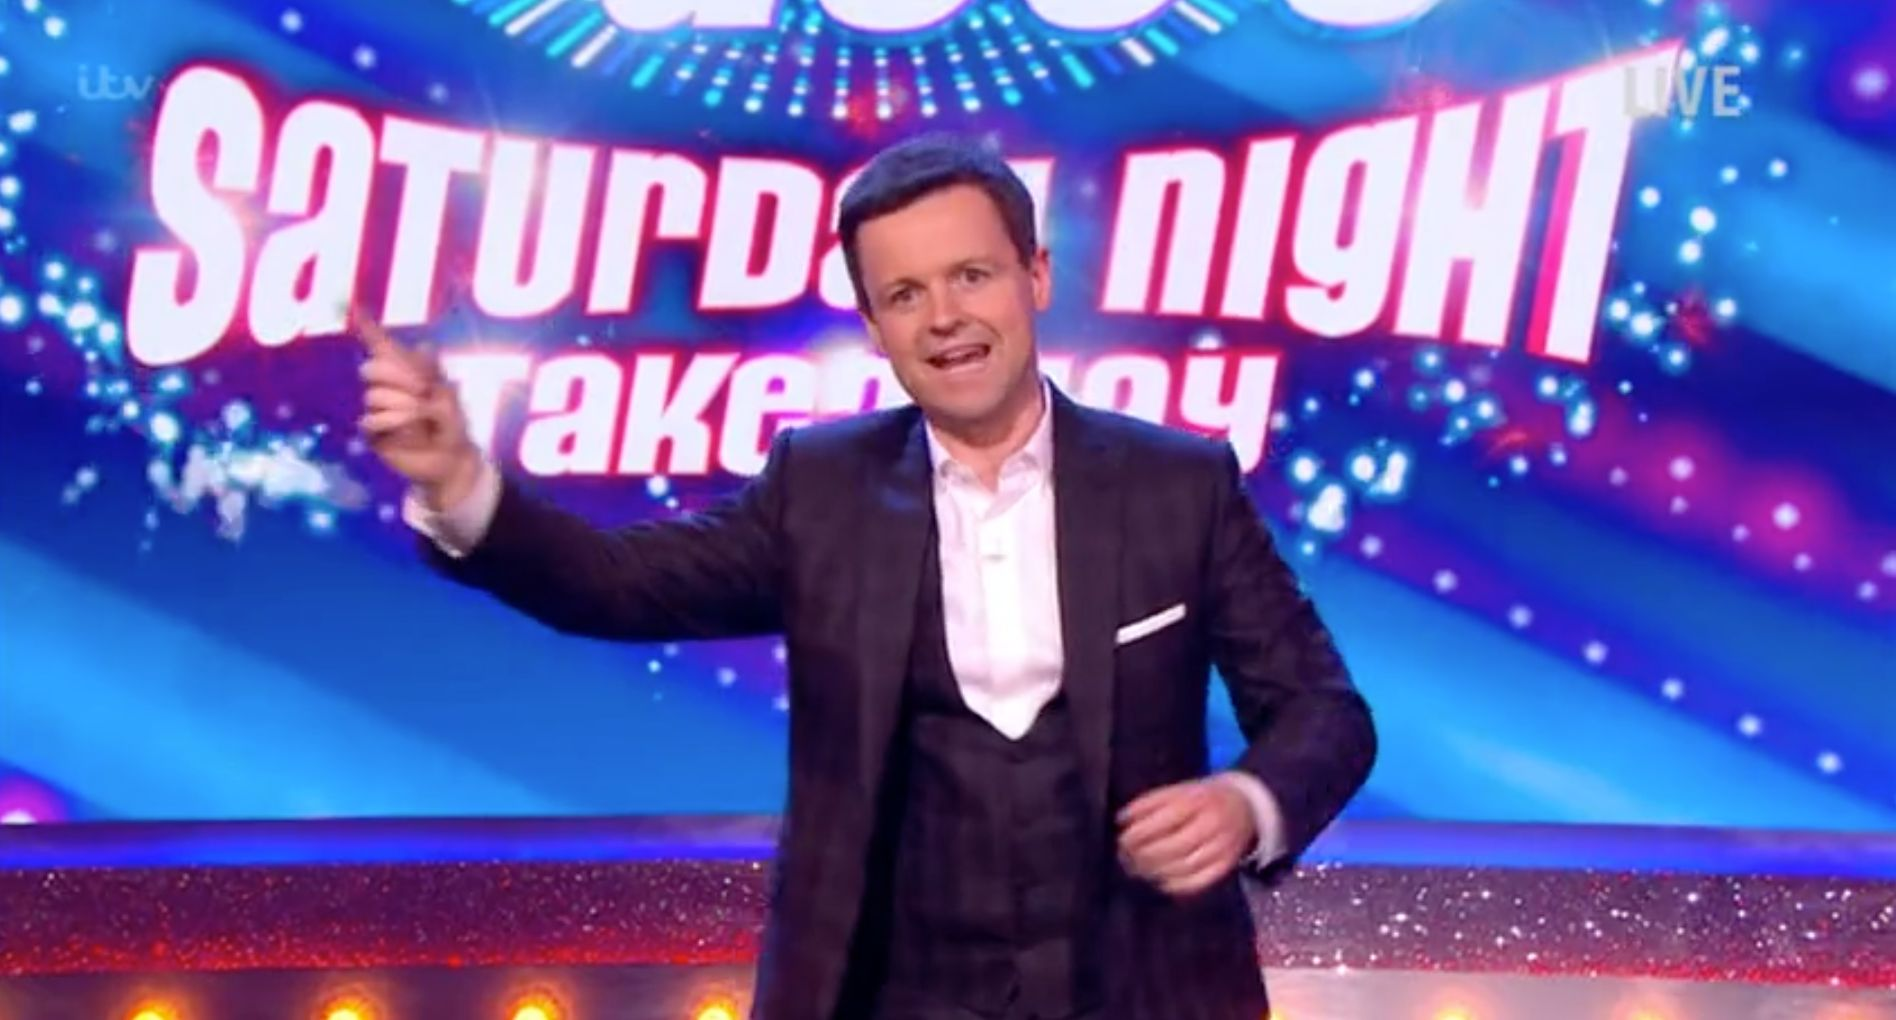 Declan Donnelly Wins Over 'Saturday Night Takeaway' Viewers With First Solo Show